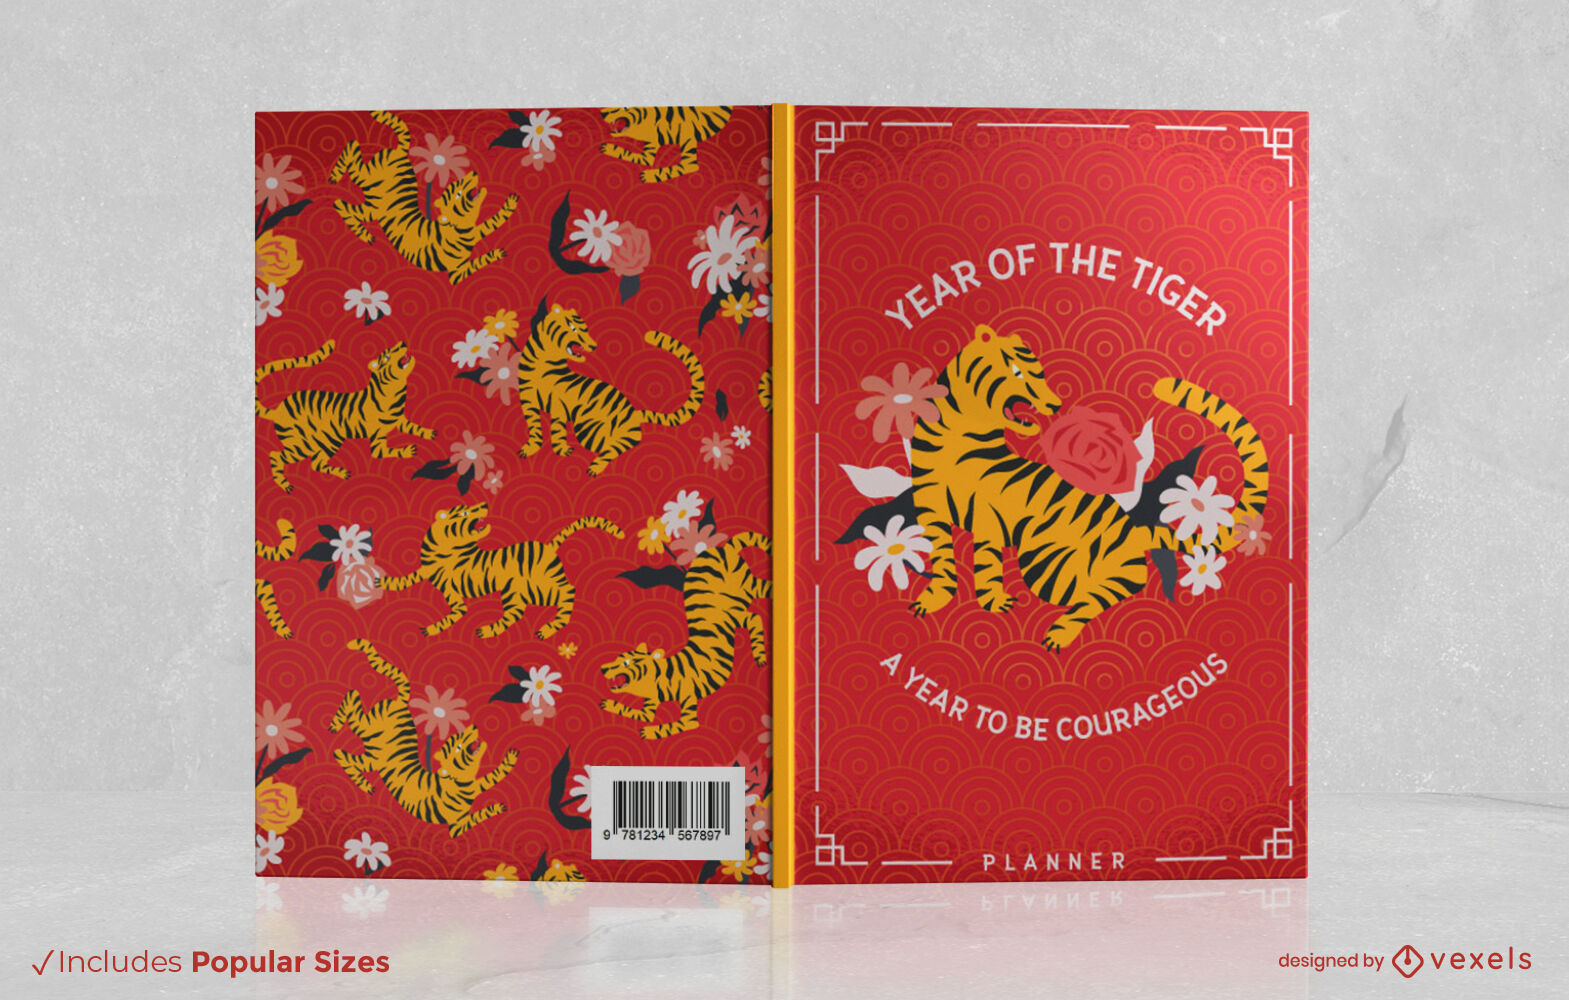 Year of the tiger floral cover design